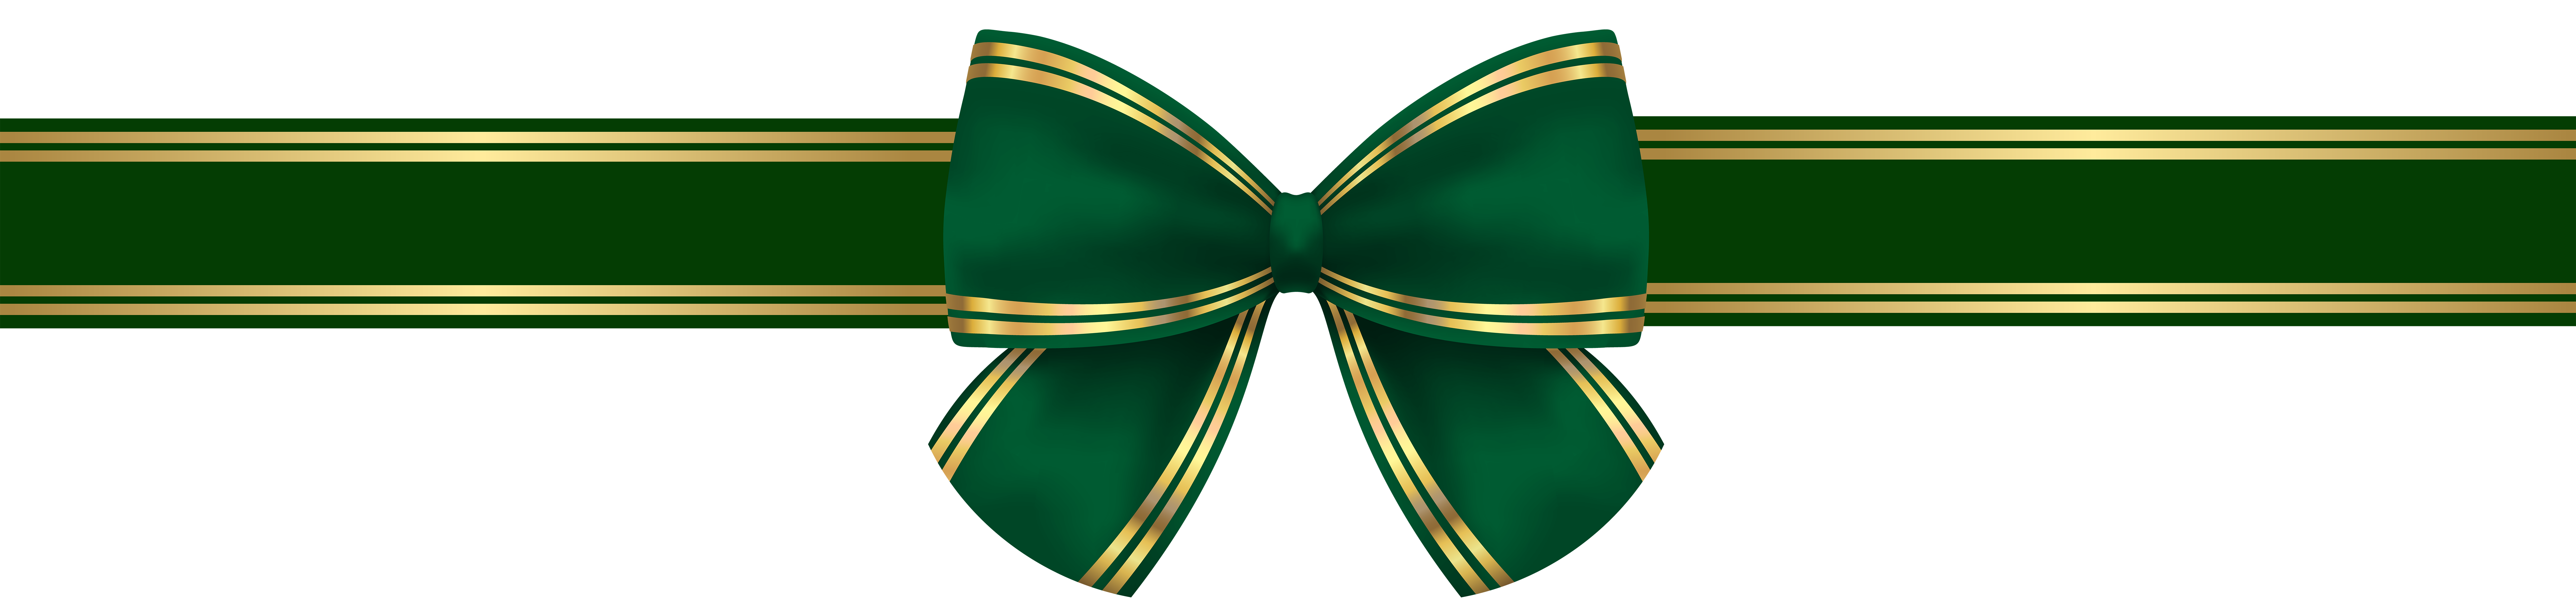 Green gold bow png. Clipart grass translucent